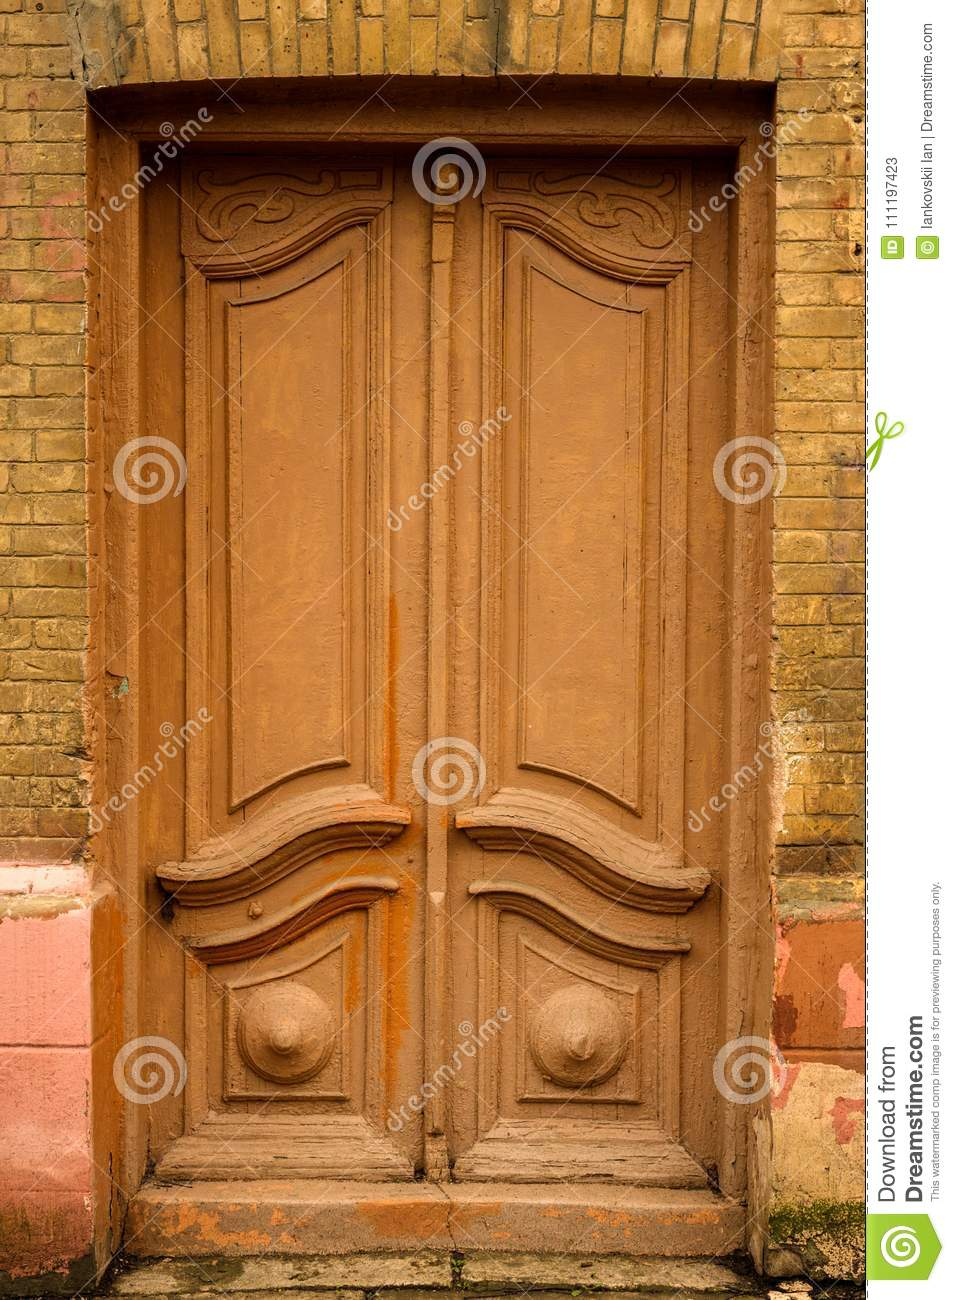 Download Wooden Ancient Italian Door In The Historic Center. Old European  Architecture. Two